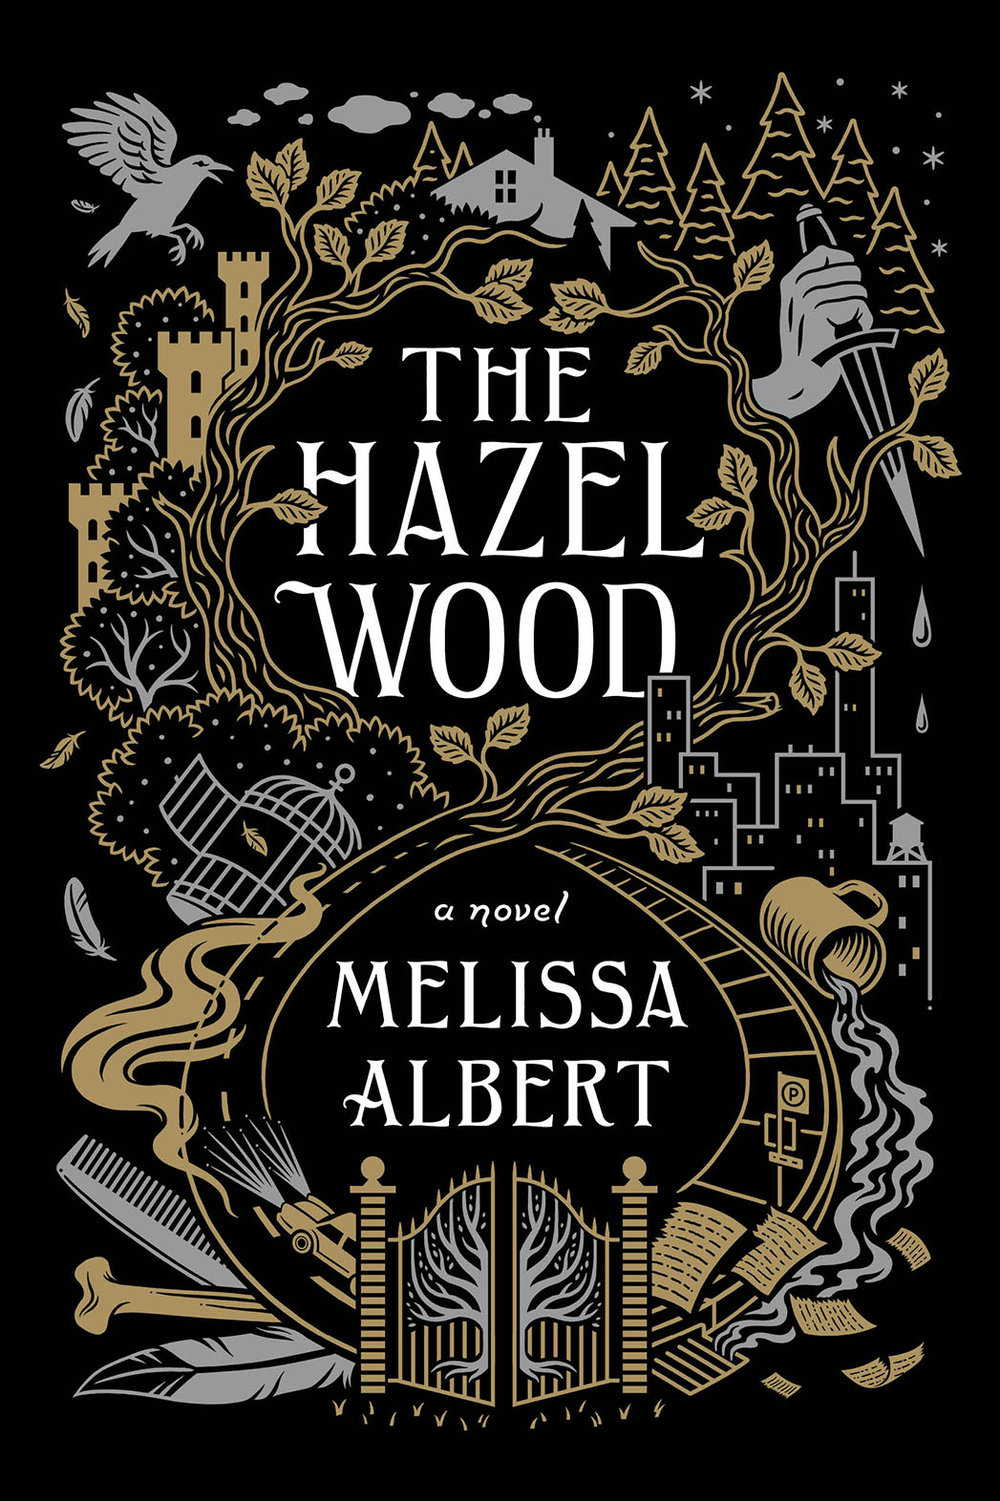 The Hazel Wood by Melissa Albert Flatiron Books --- January 30, 2018